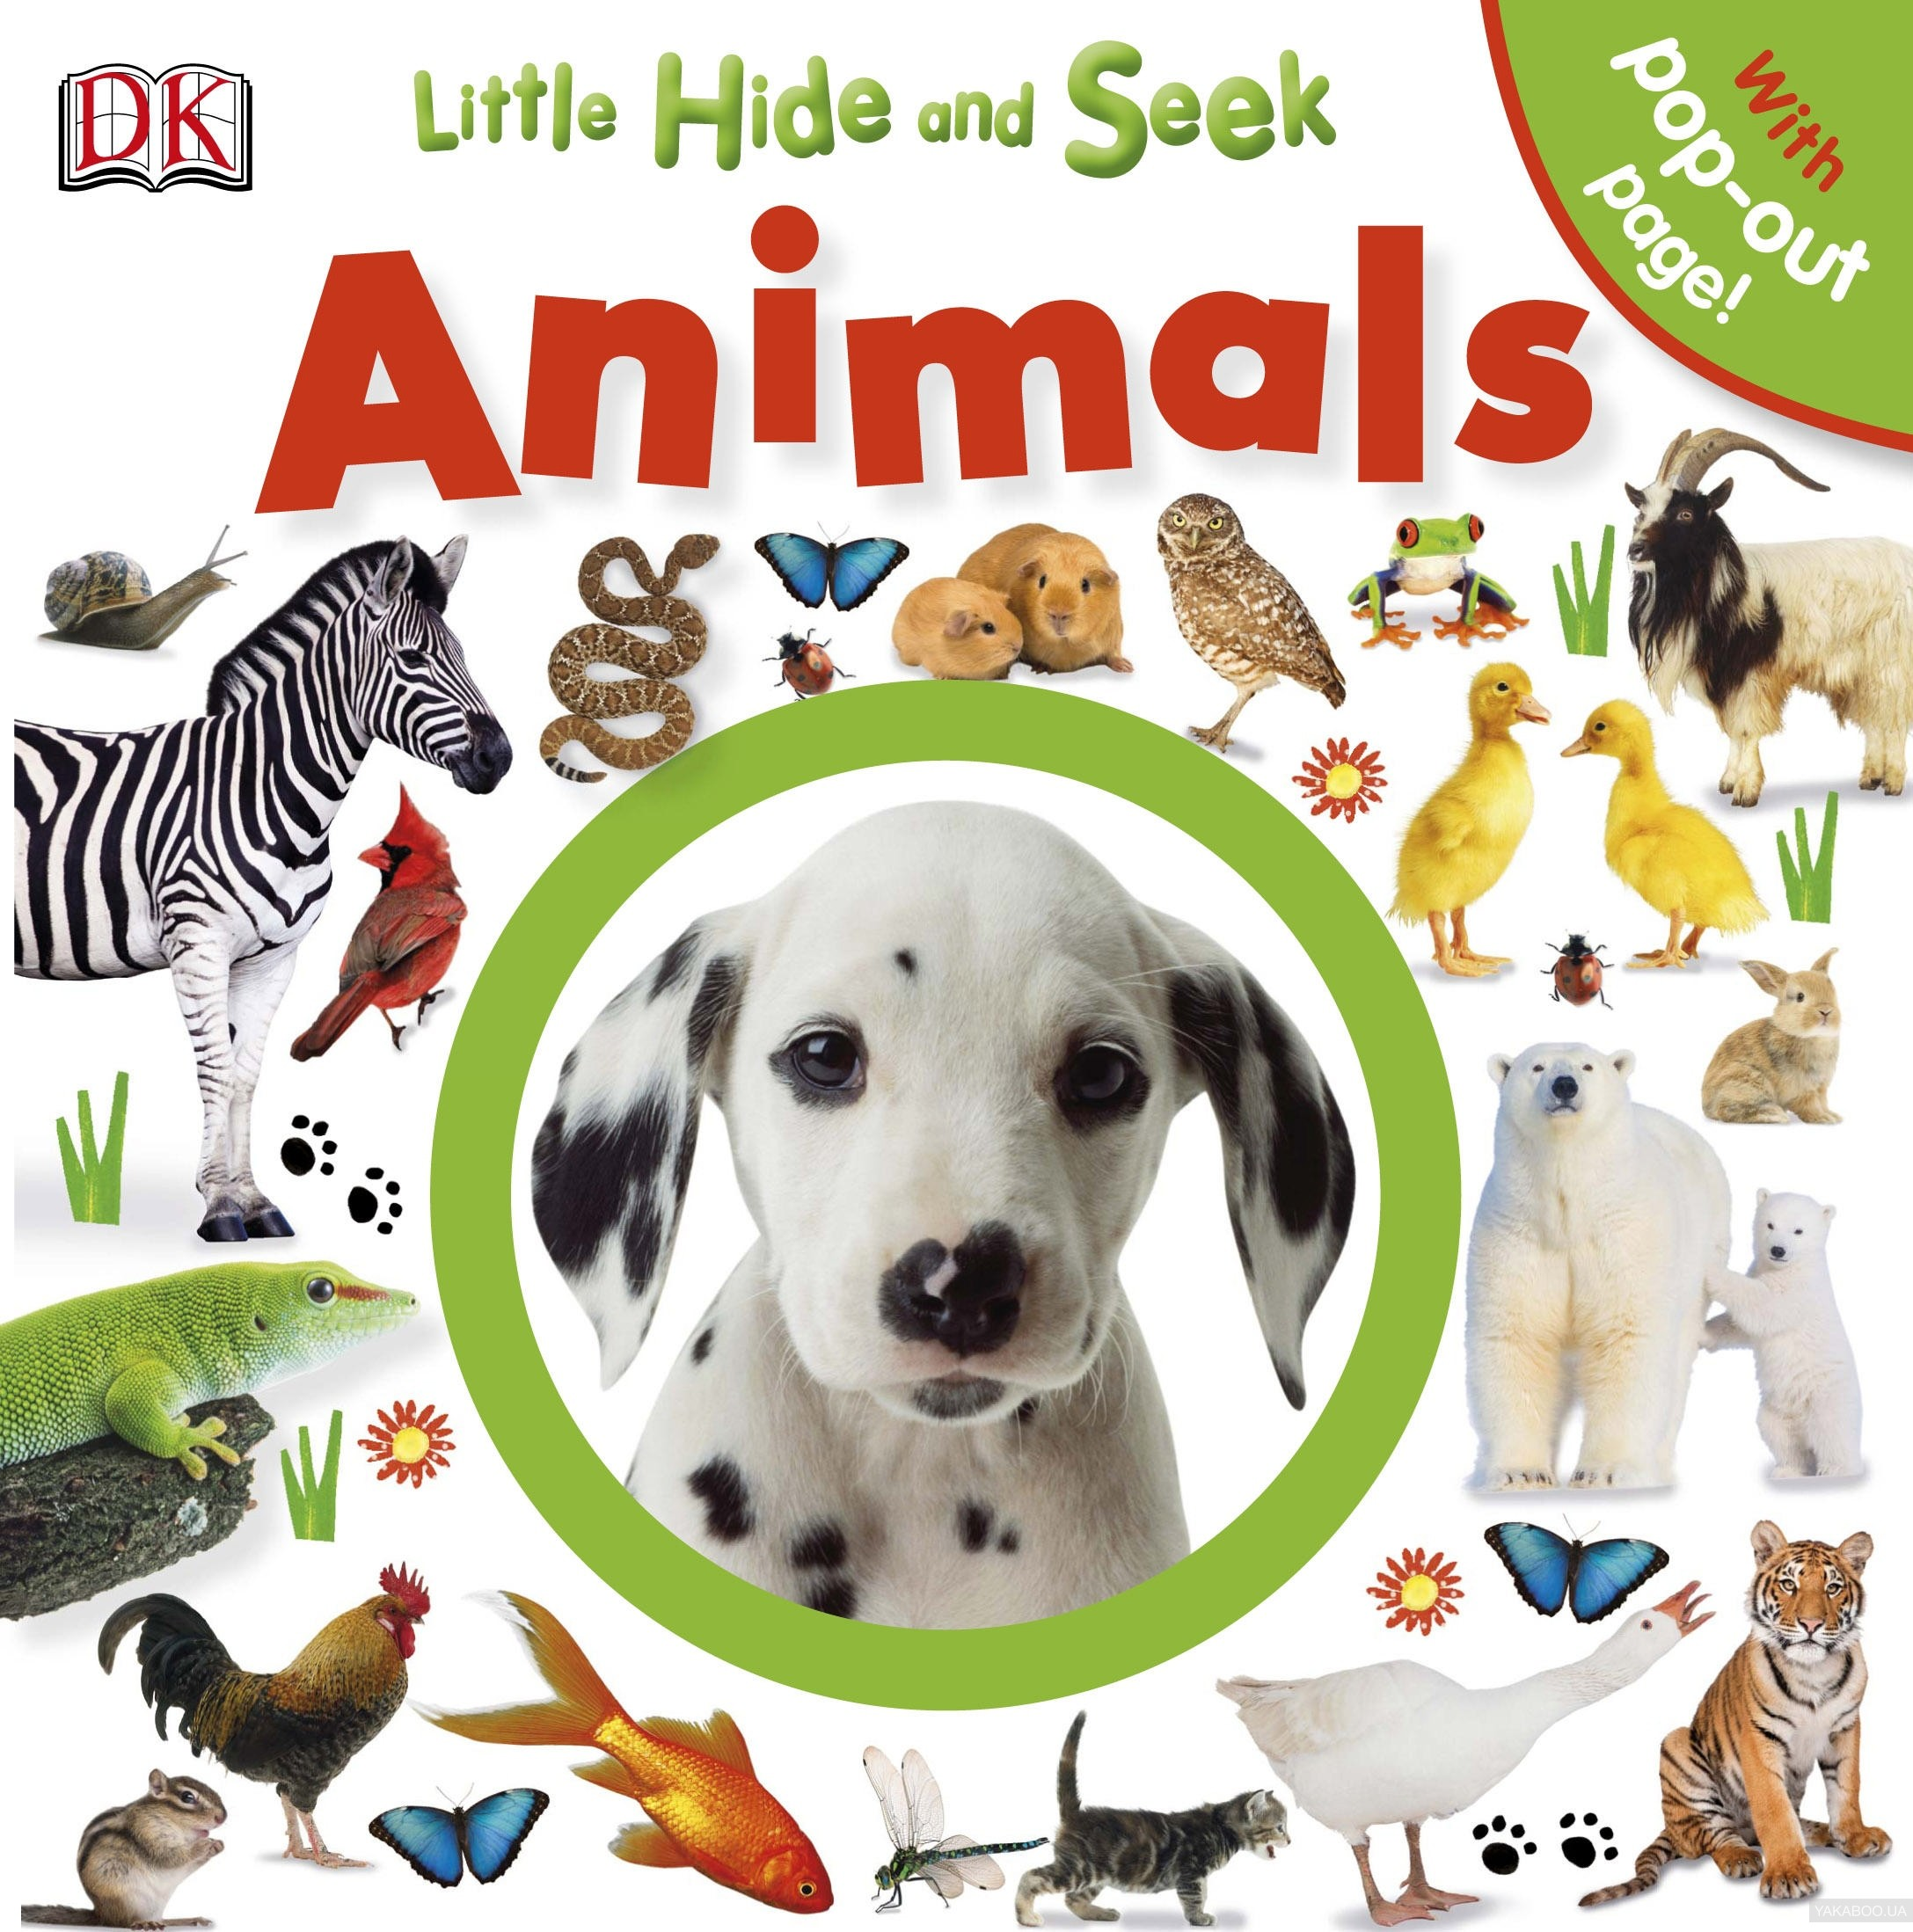 Little Hide and Seek Animals